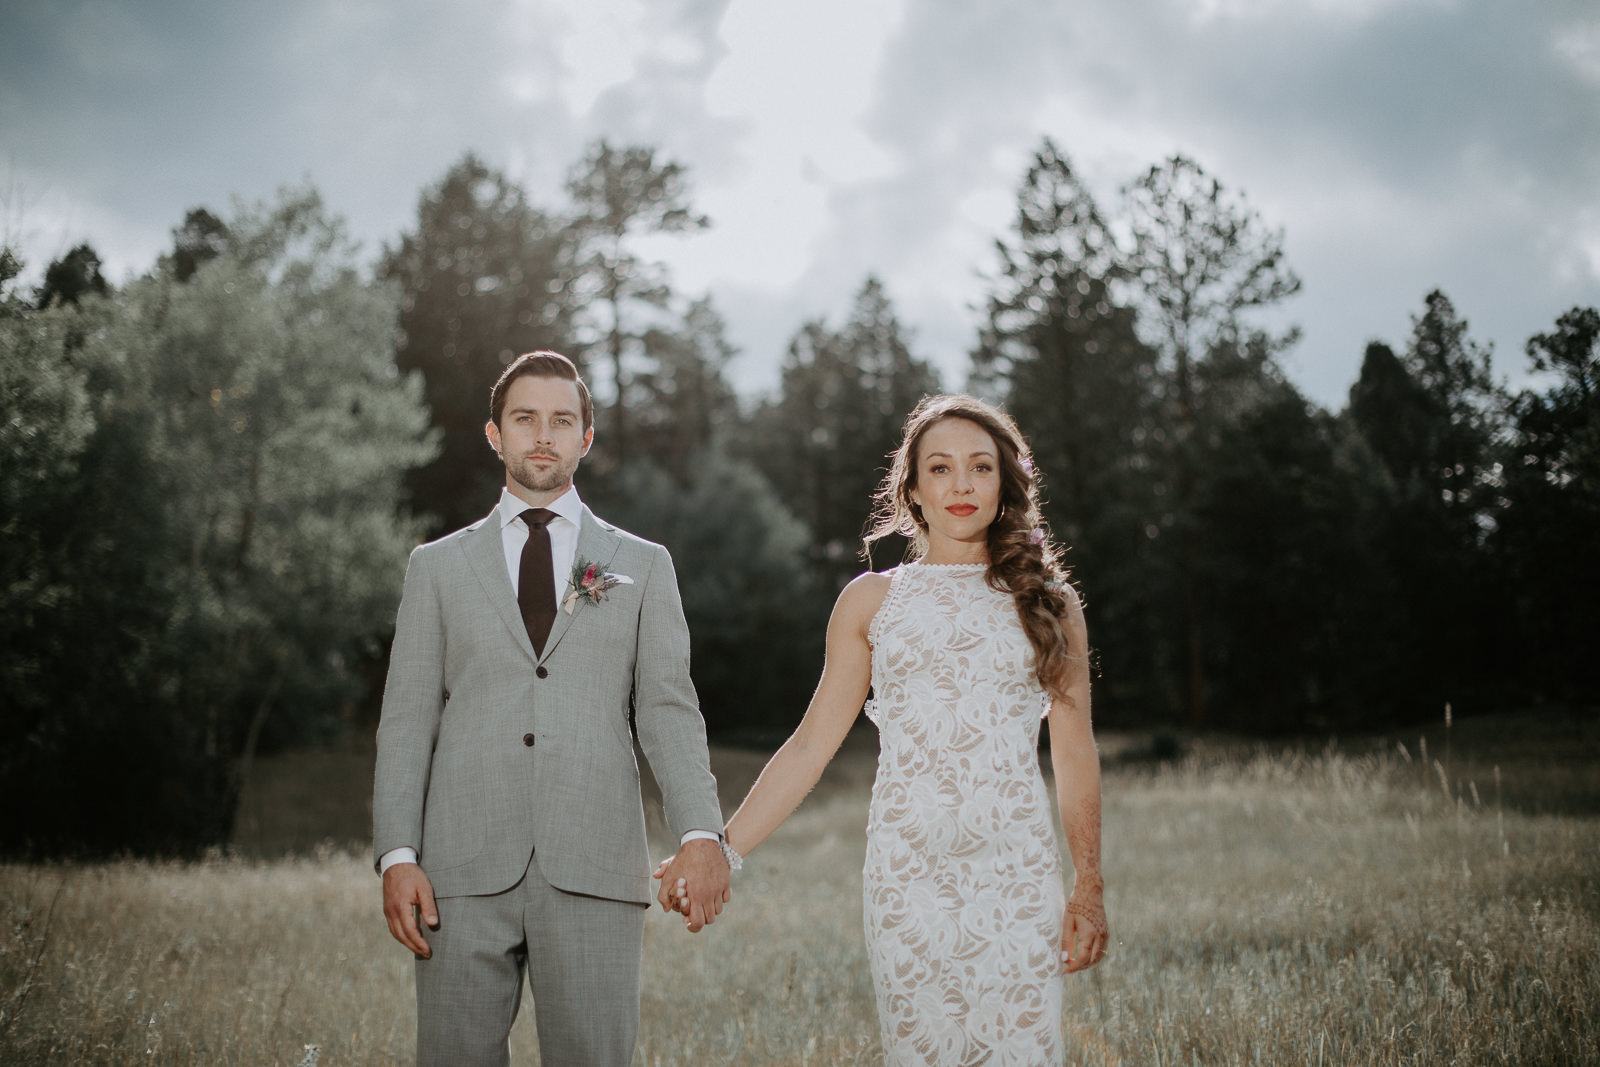 Groom and bride holding hands side by side with pine trees and blue sky